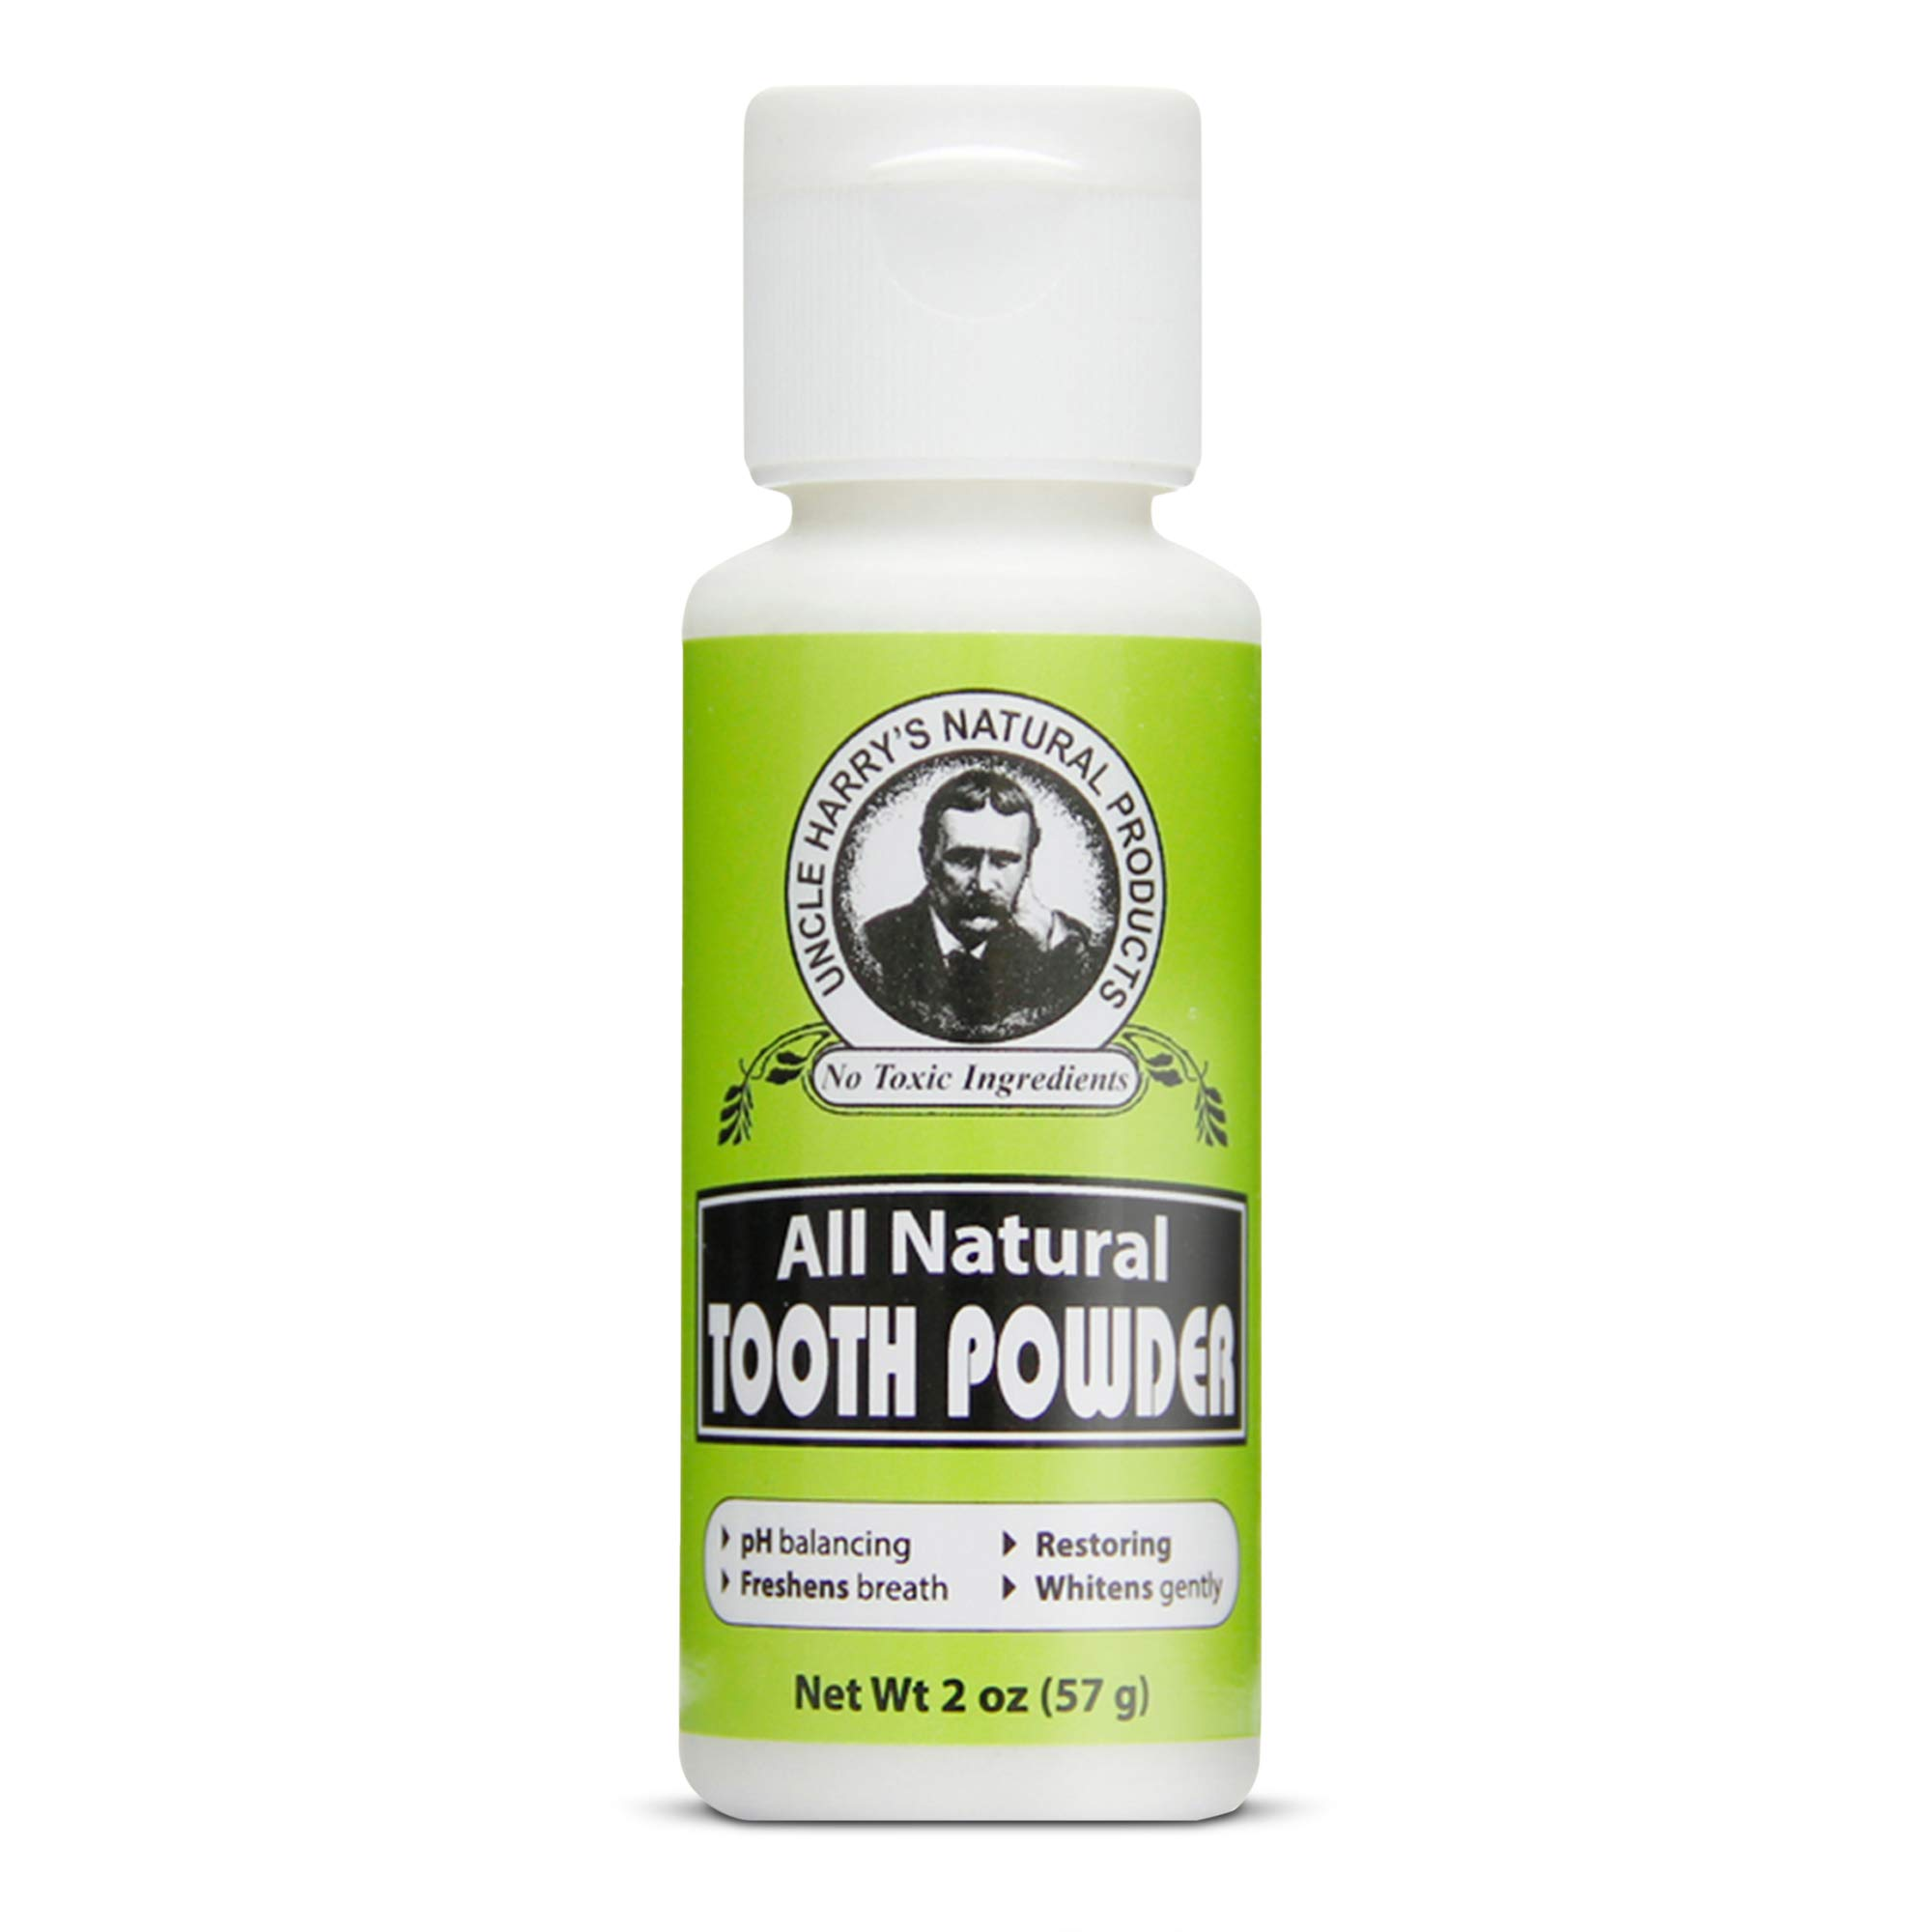 Uncle Harry's Remineralizing Tooth Powder | All Natural Enamel Support & Whitening Toothpaste for Sensitive Teeth | Organic Powder Toothpaste for Gum Health & Fresh Breath (2 oz)